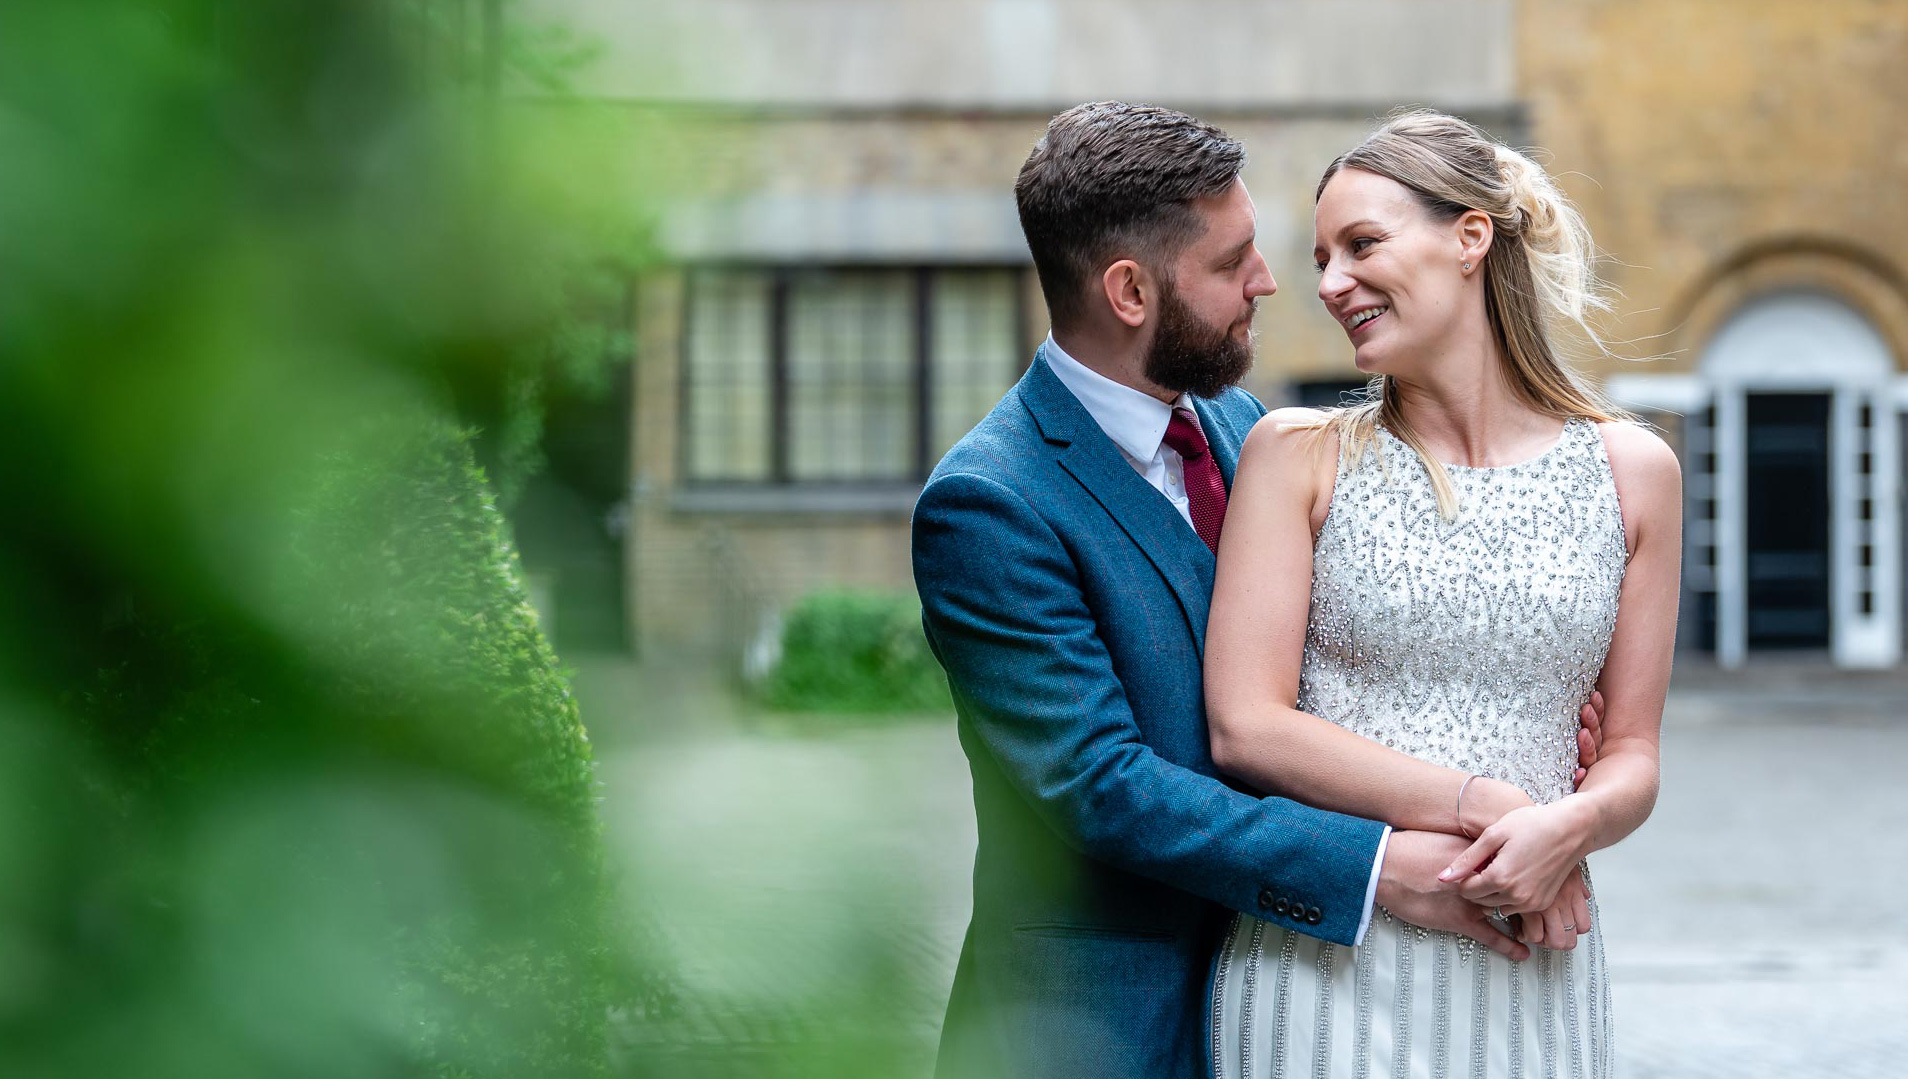 An image of a happy couple together on their wedding day - wedding day photography by Sam of Hansford Carter, a Kent-based wedding photographer